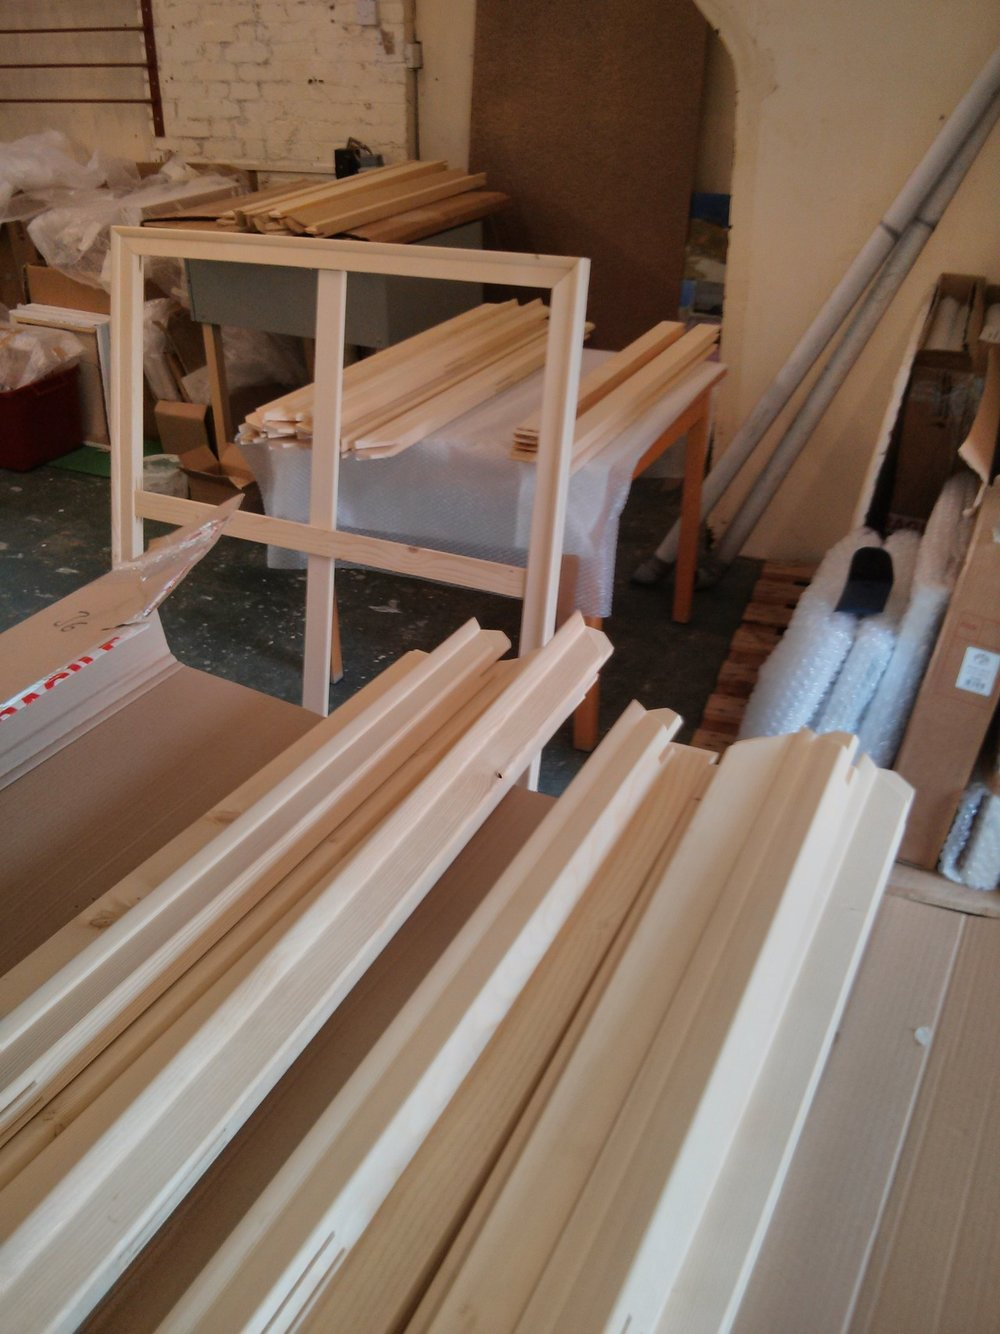 Delivery of stretchers arrived this afternoon. Should be enough to see me through the rest of the year or maybe longer at the slow rate I'm finishing work at the moment.